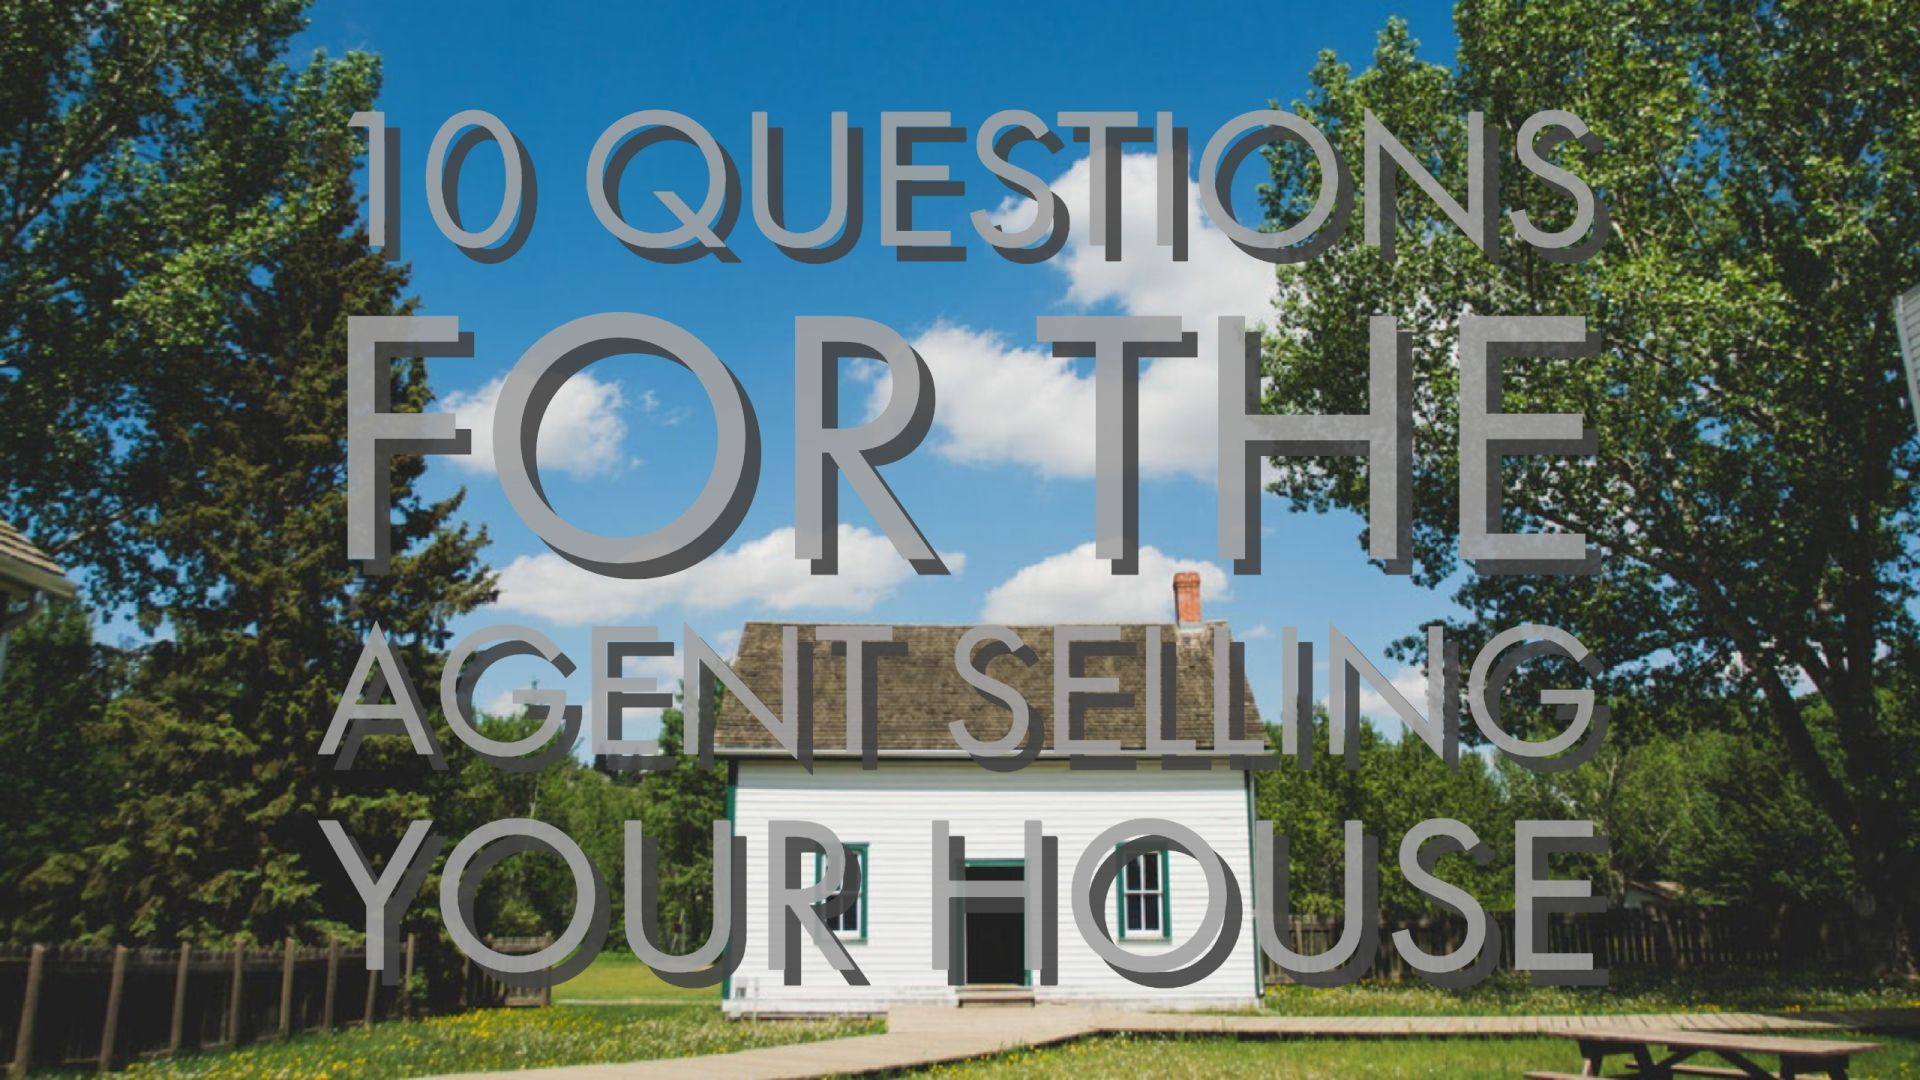 10 Questions for the Agent Selling Your House